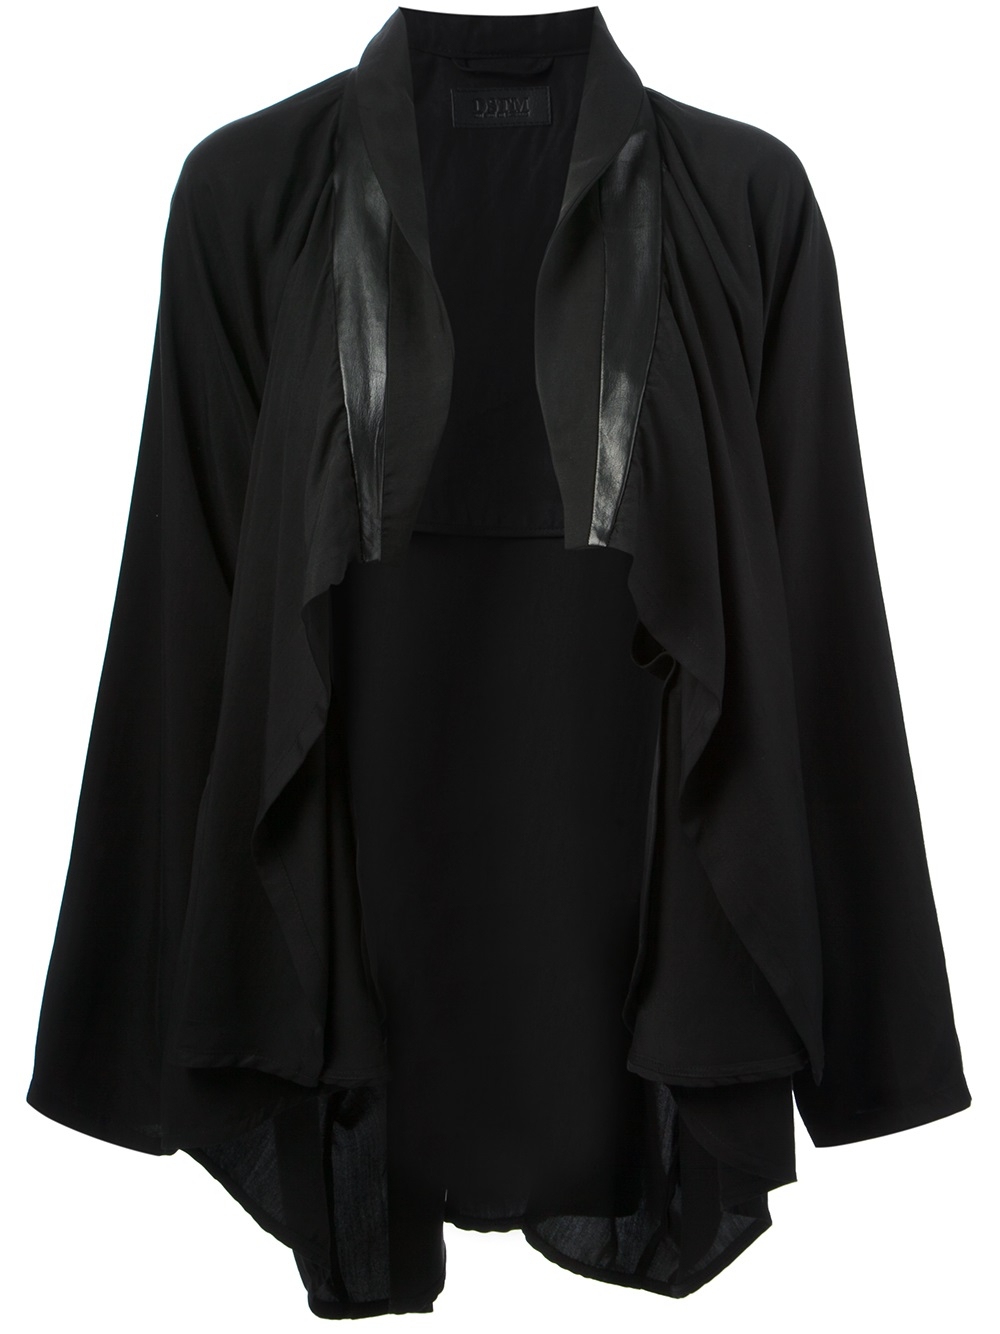 Dstm Fold Jacket In Black Lyst